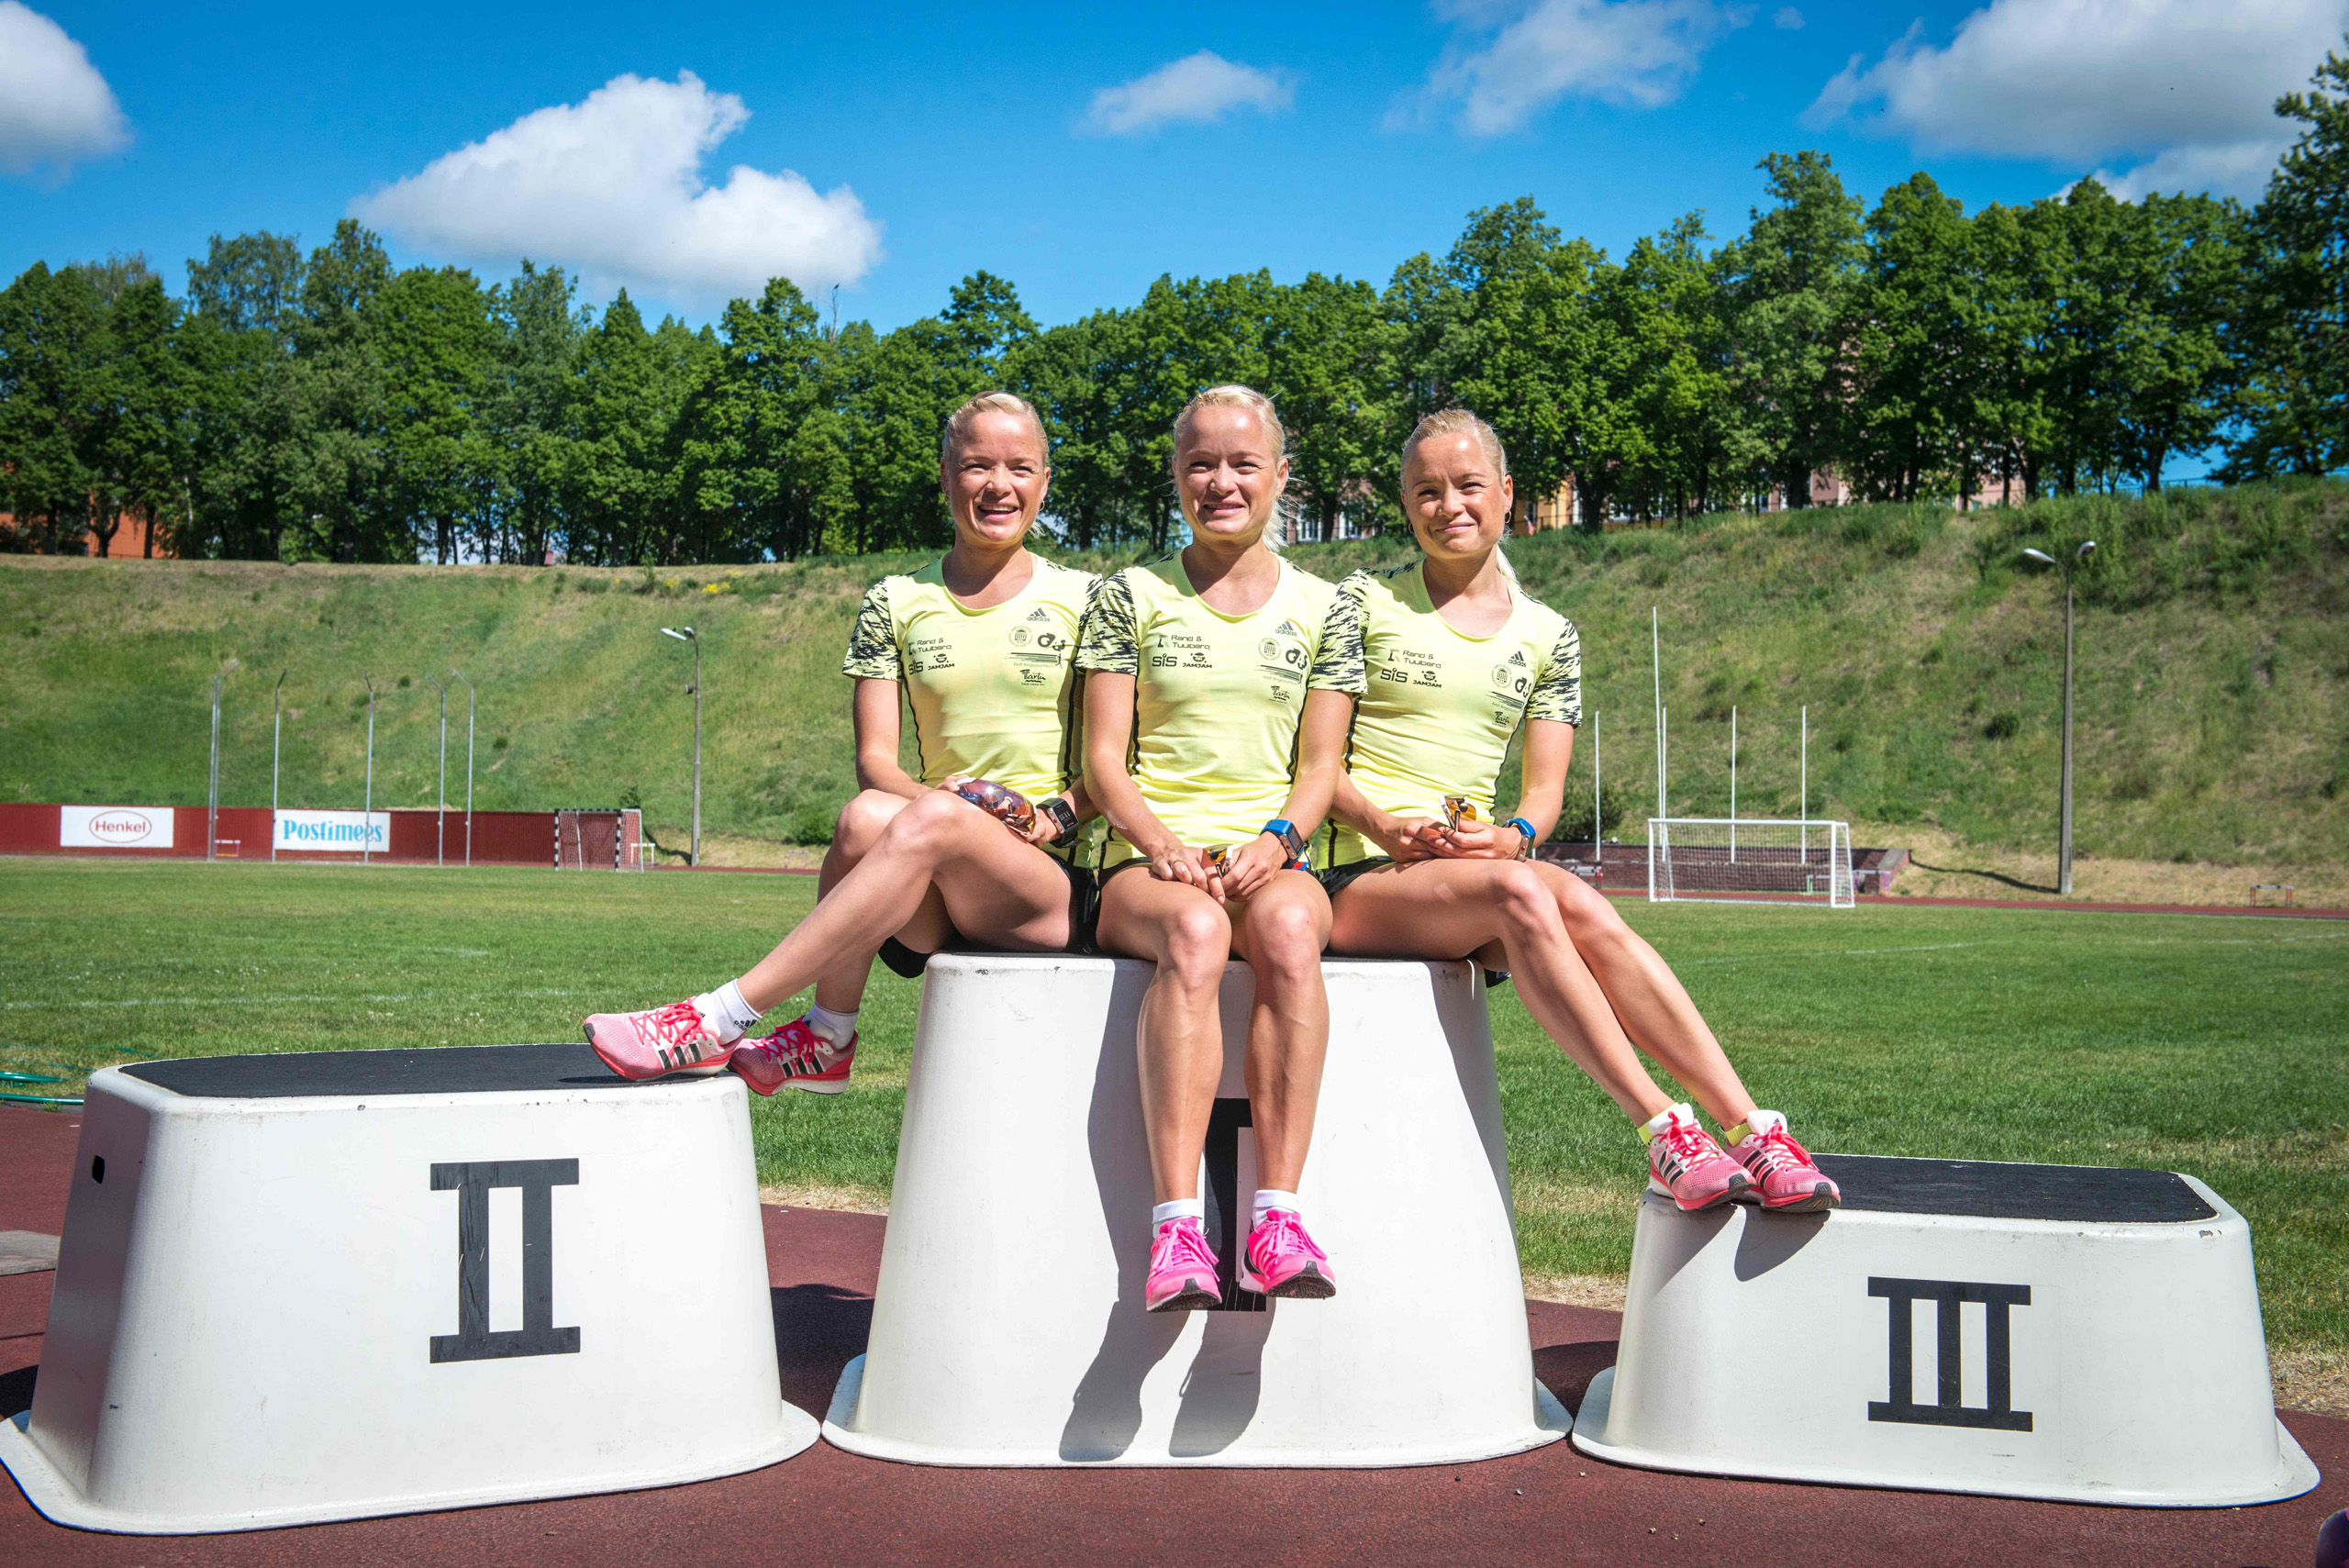 The 30-year-old identical triplets, Leila, Liina and Lily Luik, are creating history by competing in this year's Rio Olympics